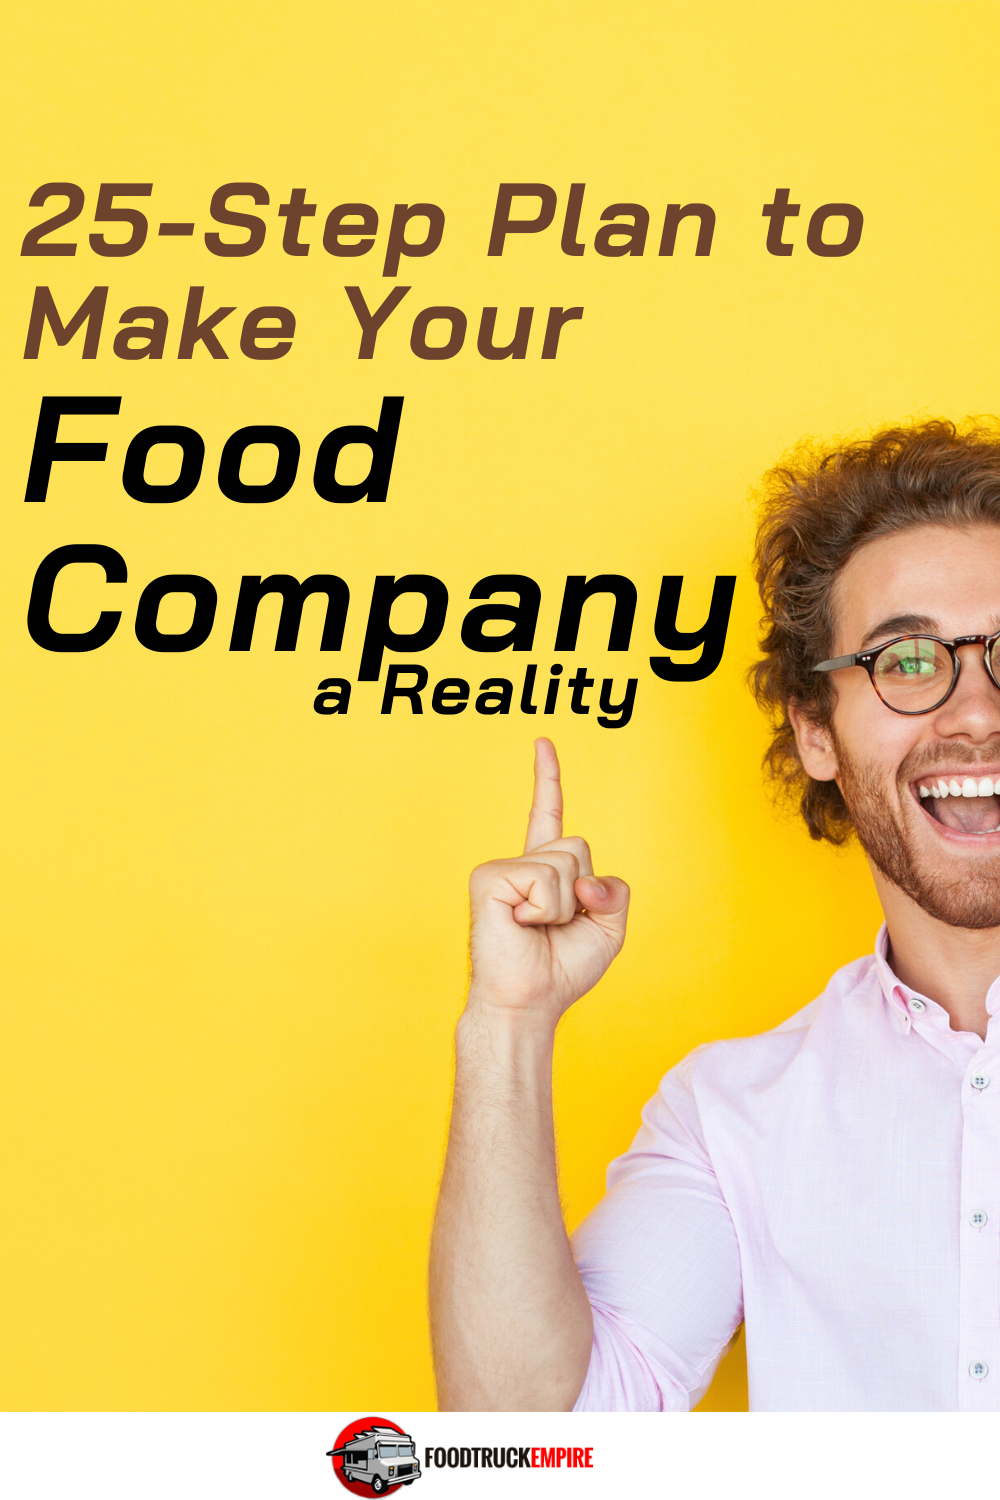 25-Step Plan to Make Your Food Company a Reality